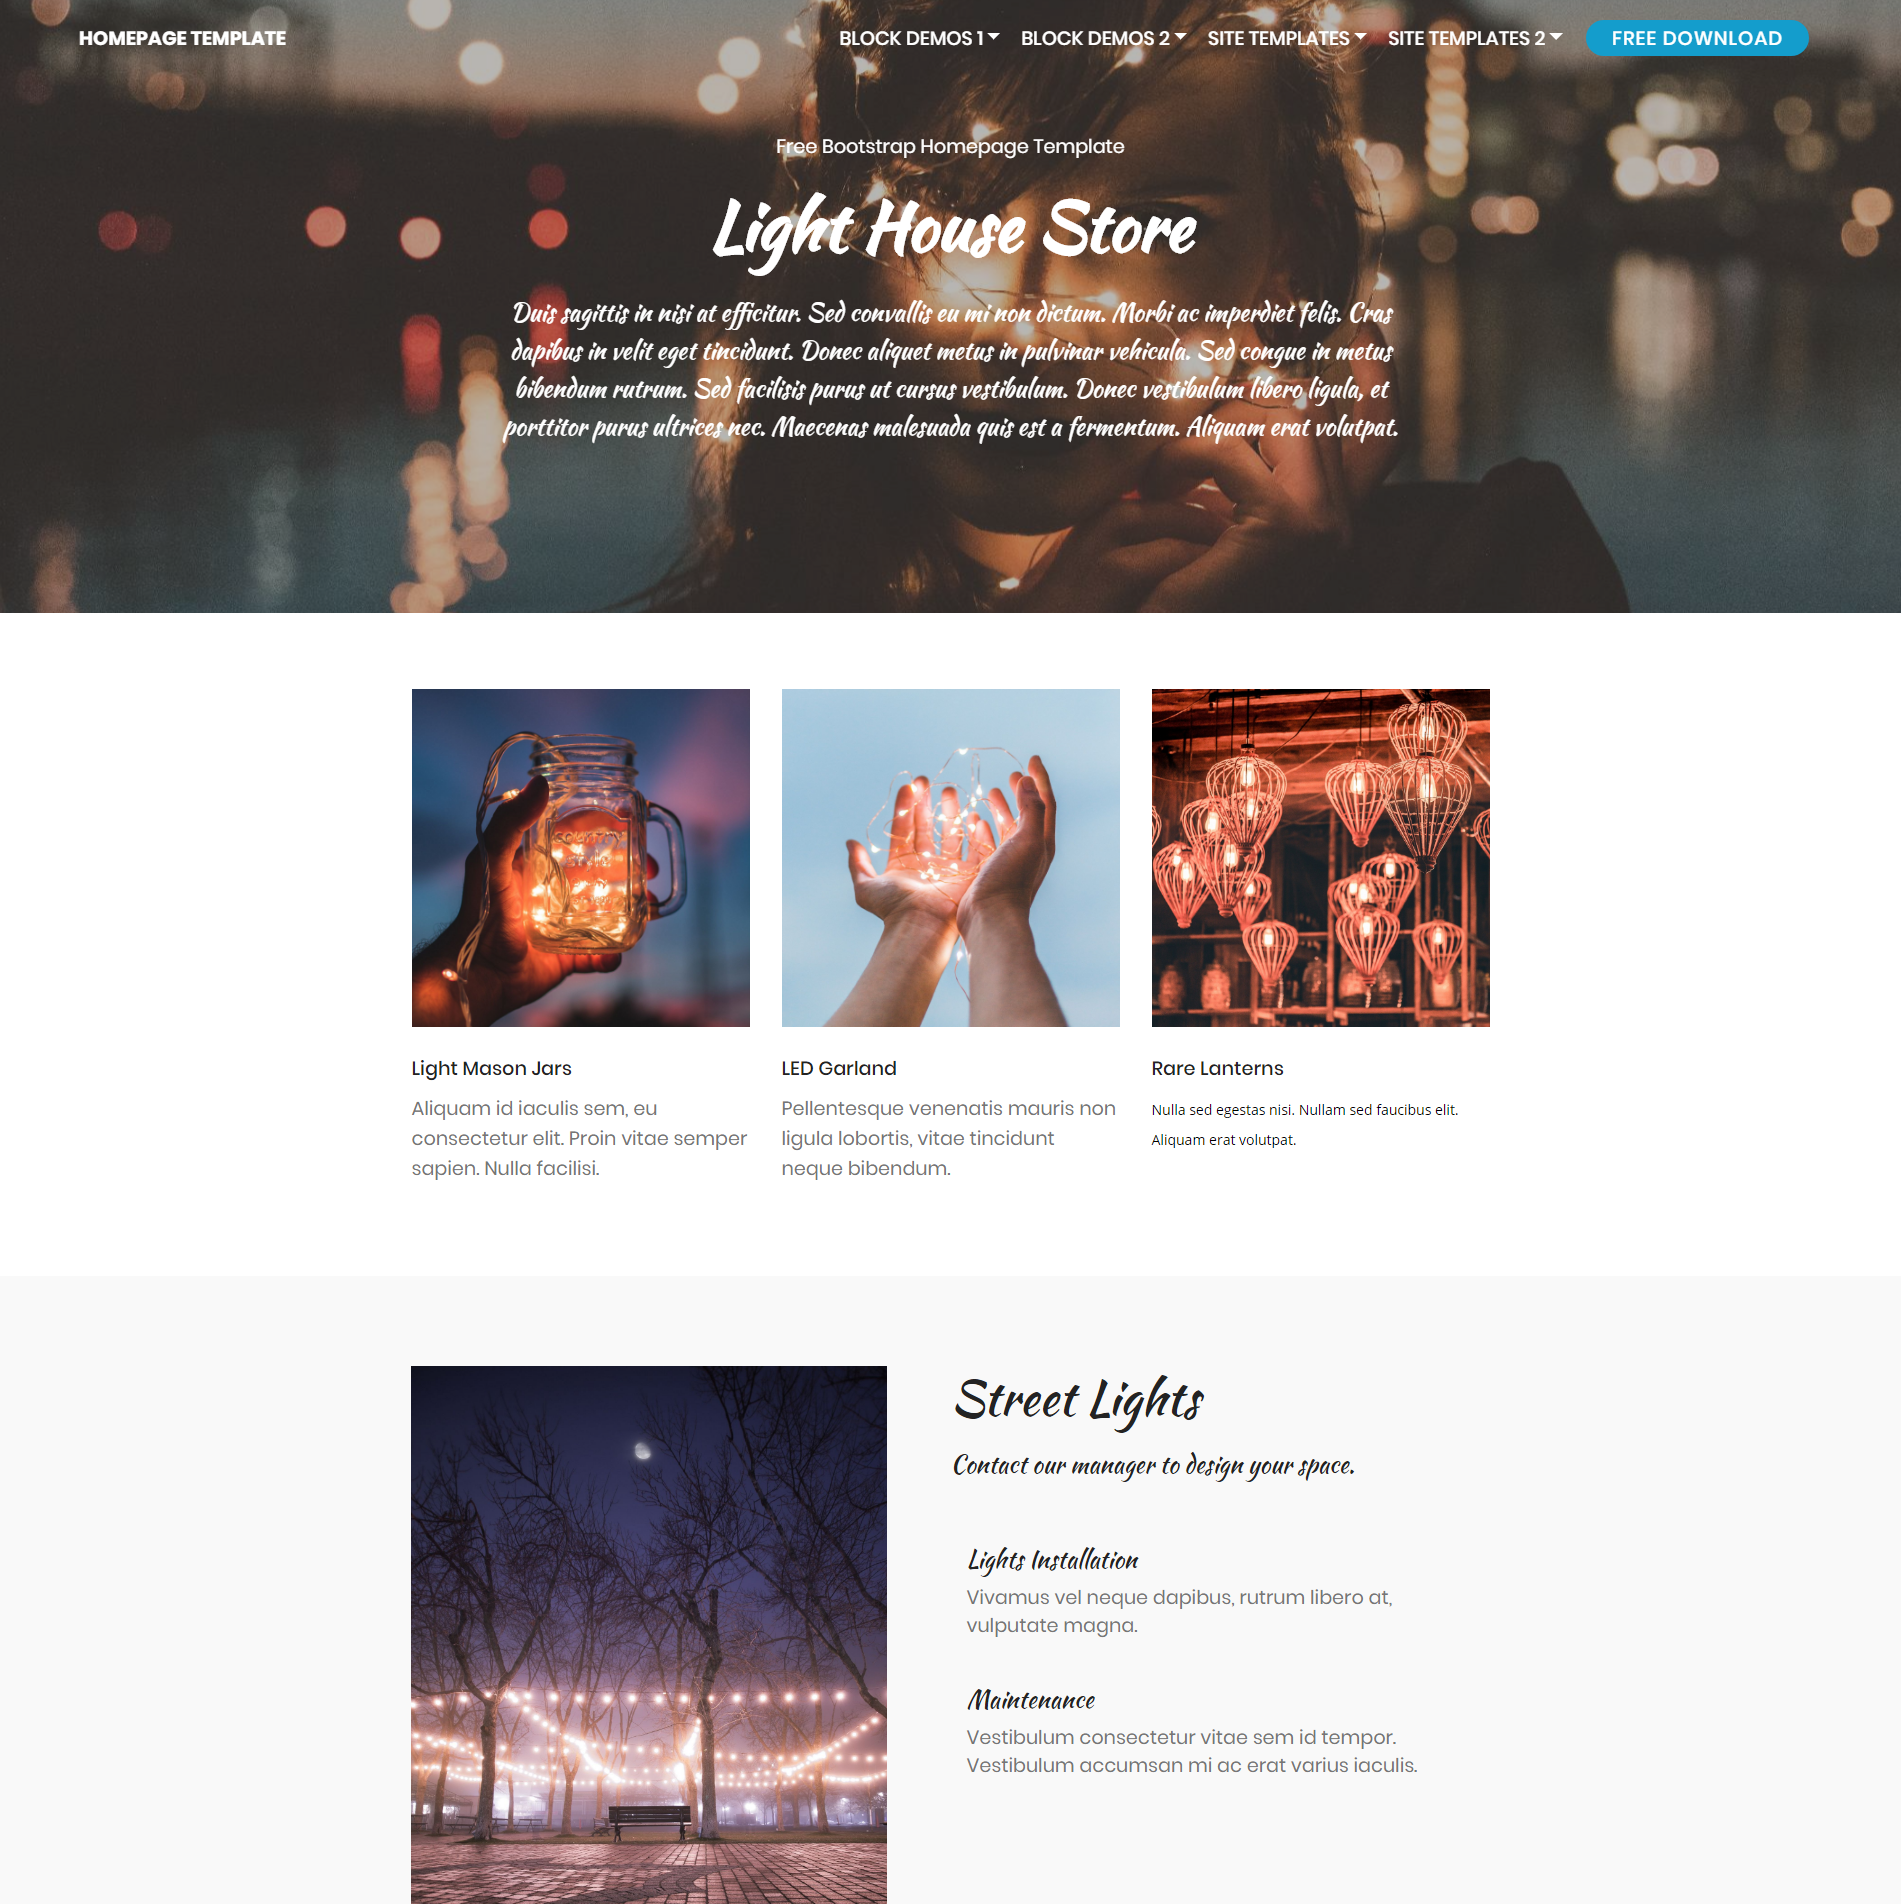 HTML Bootstrap Homepage Templates